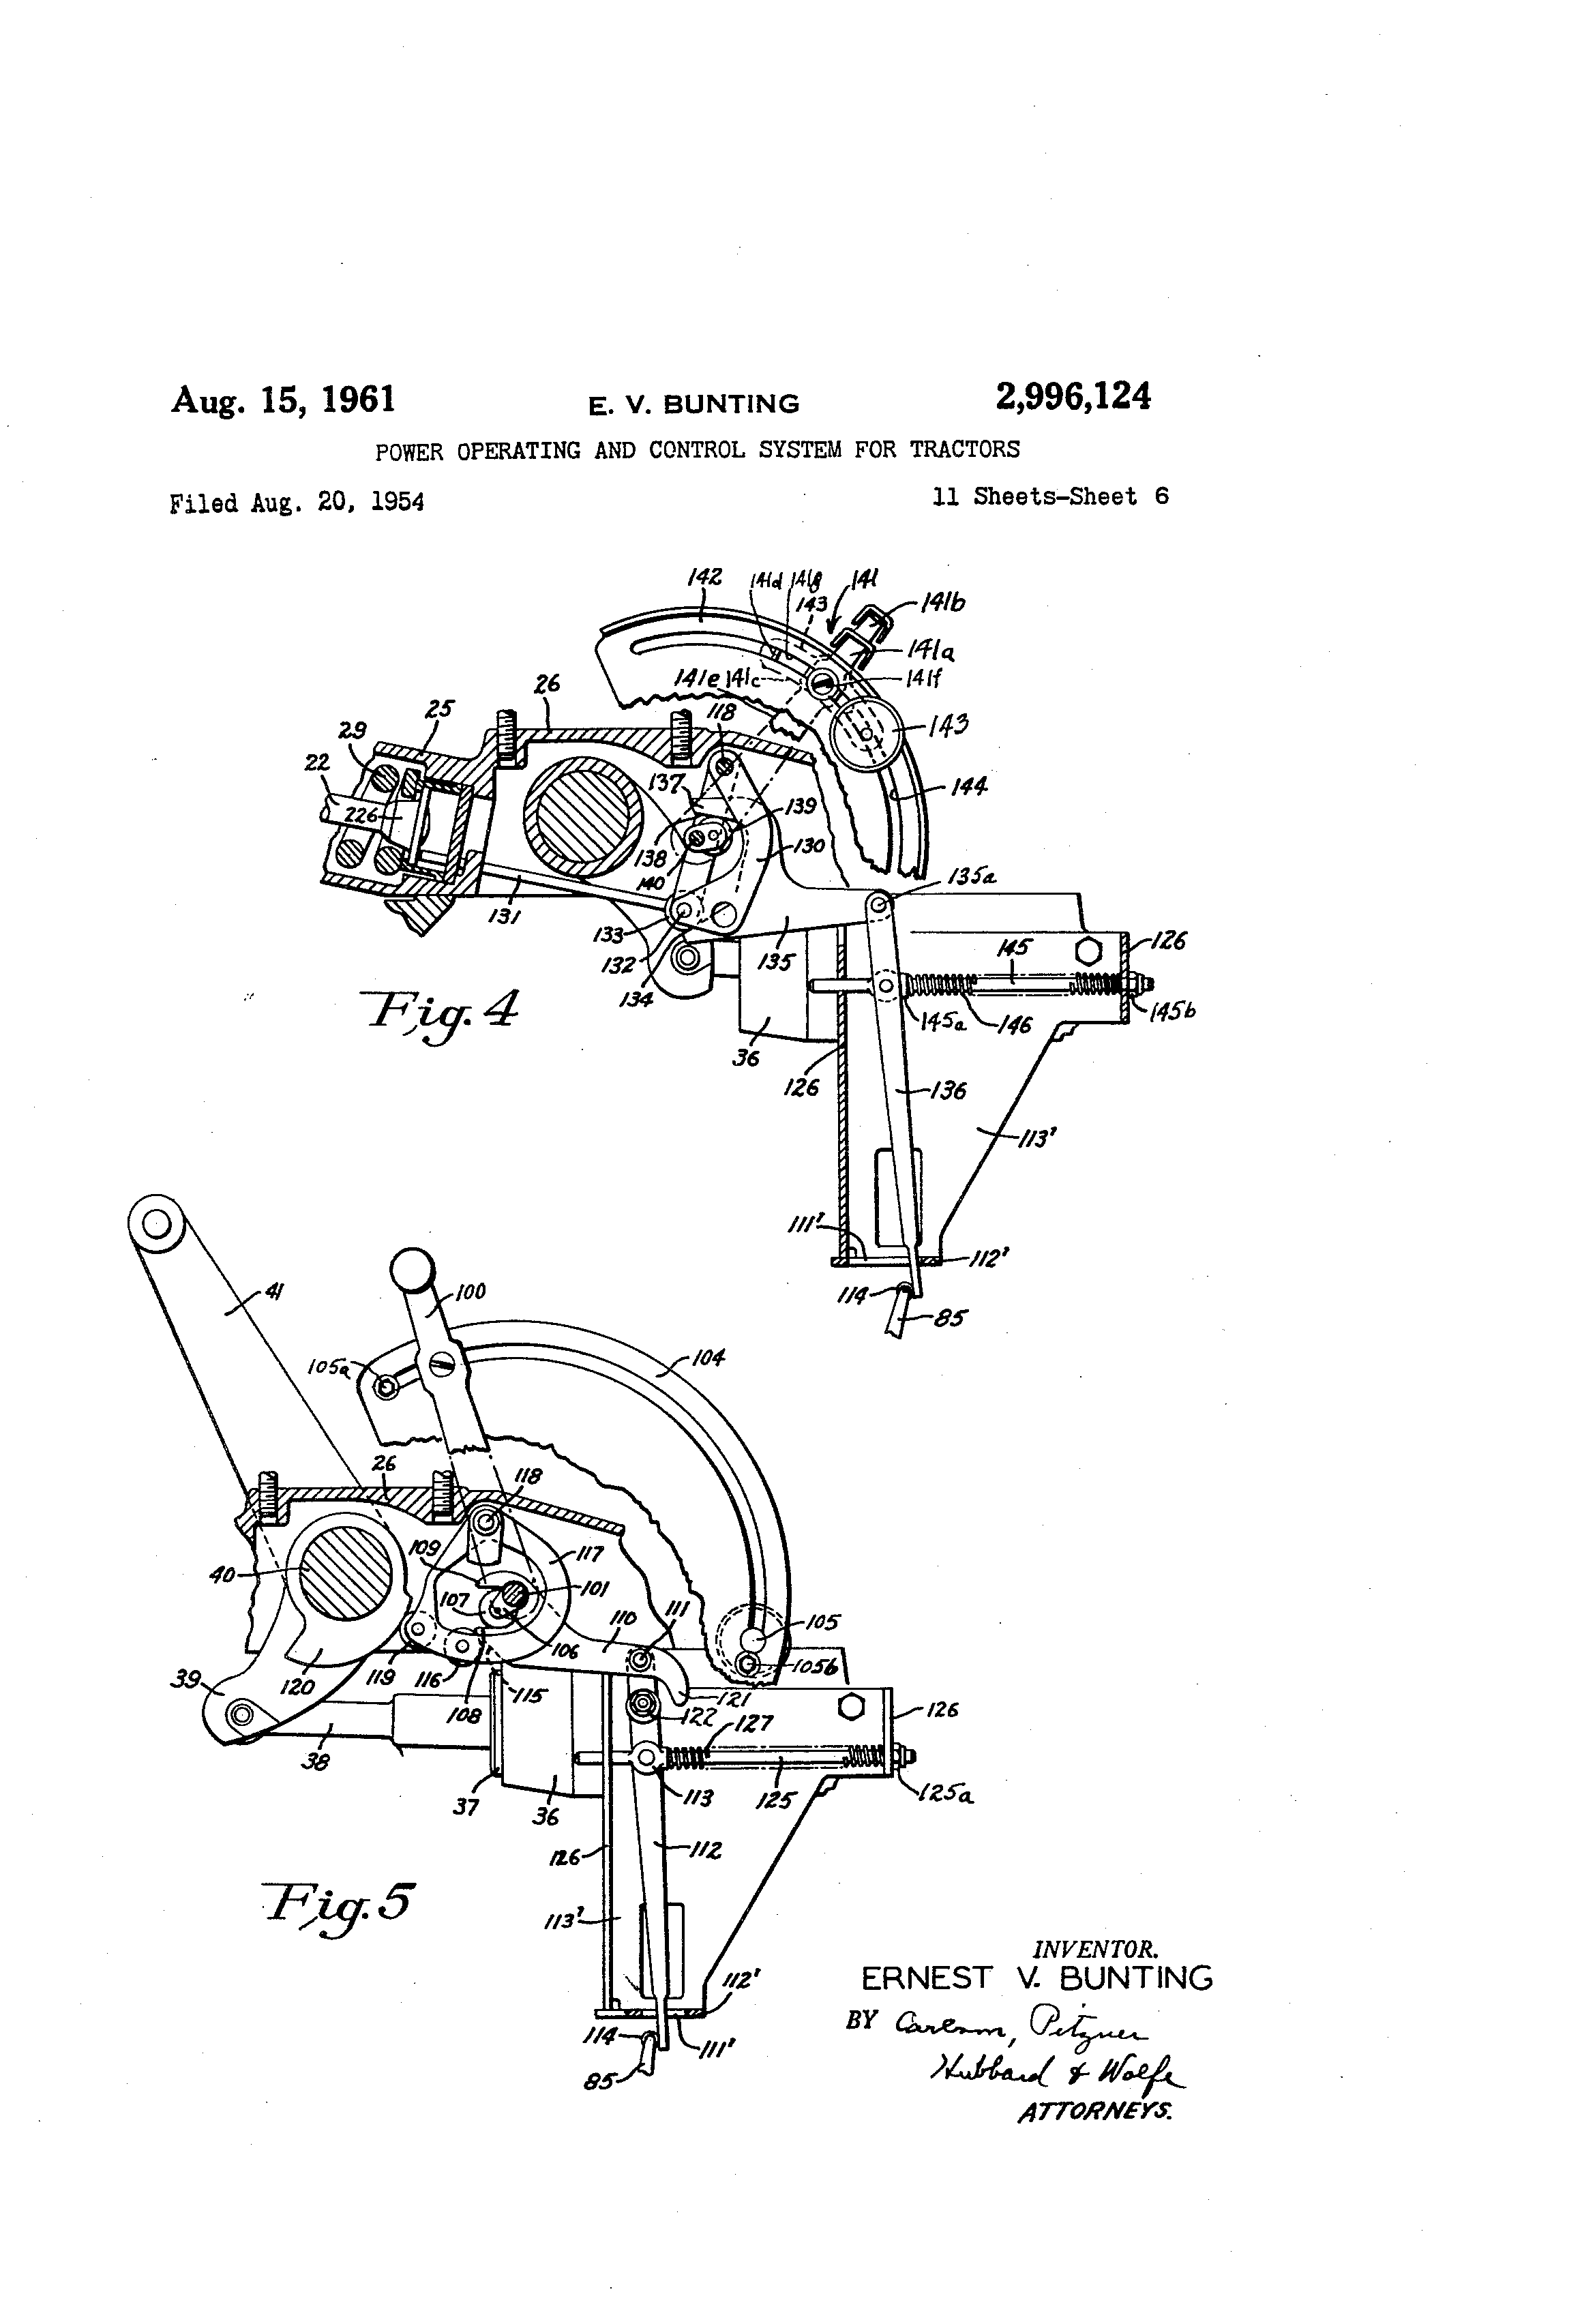 3000 Ford Tractor Wiring Diagram furthermore Wiring Diagrams Harnesses For Ford Tractors besides 8n Ford Tractor Zenith Carburetor Diagram further Ford Naa Wiring Diagram furthermore 1955 Ford 800 Tractor Parts. on ford jubilee wiring harness